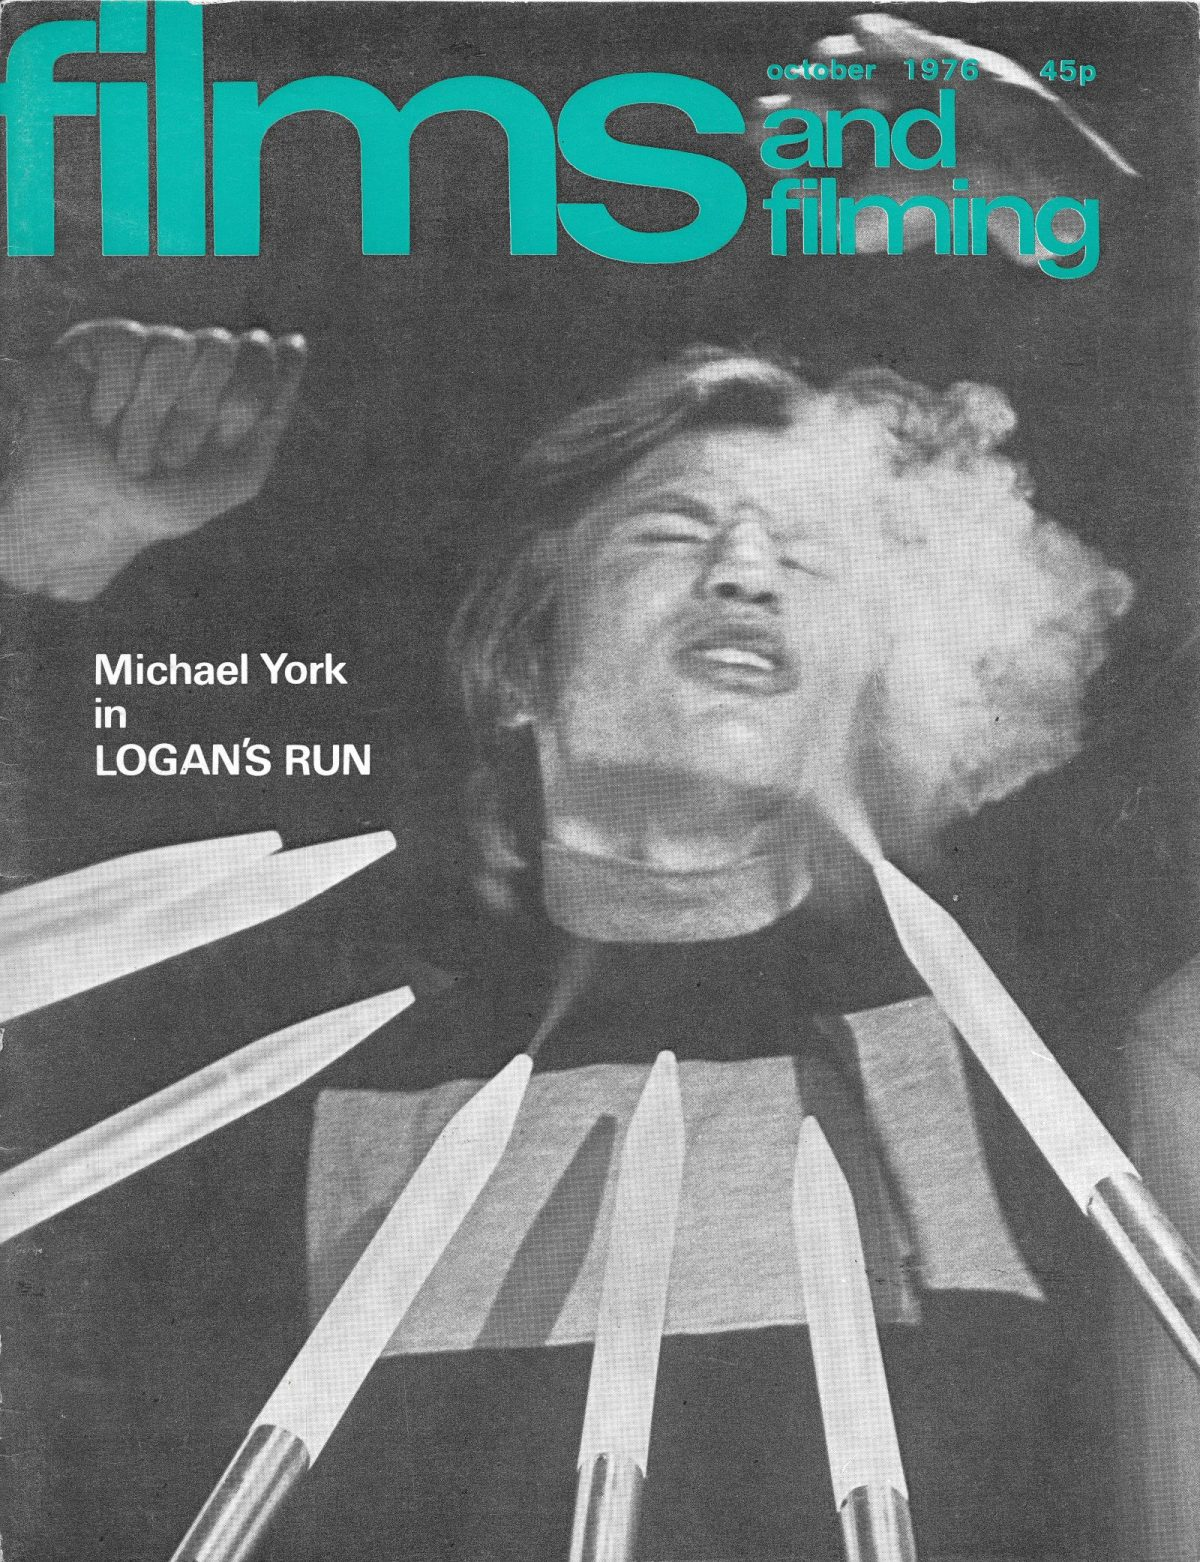 Films & Filming, film, magazines, Michael York, Logan's Run, 1970s